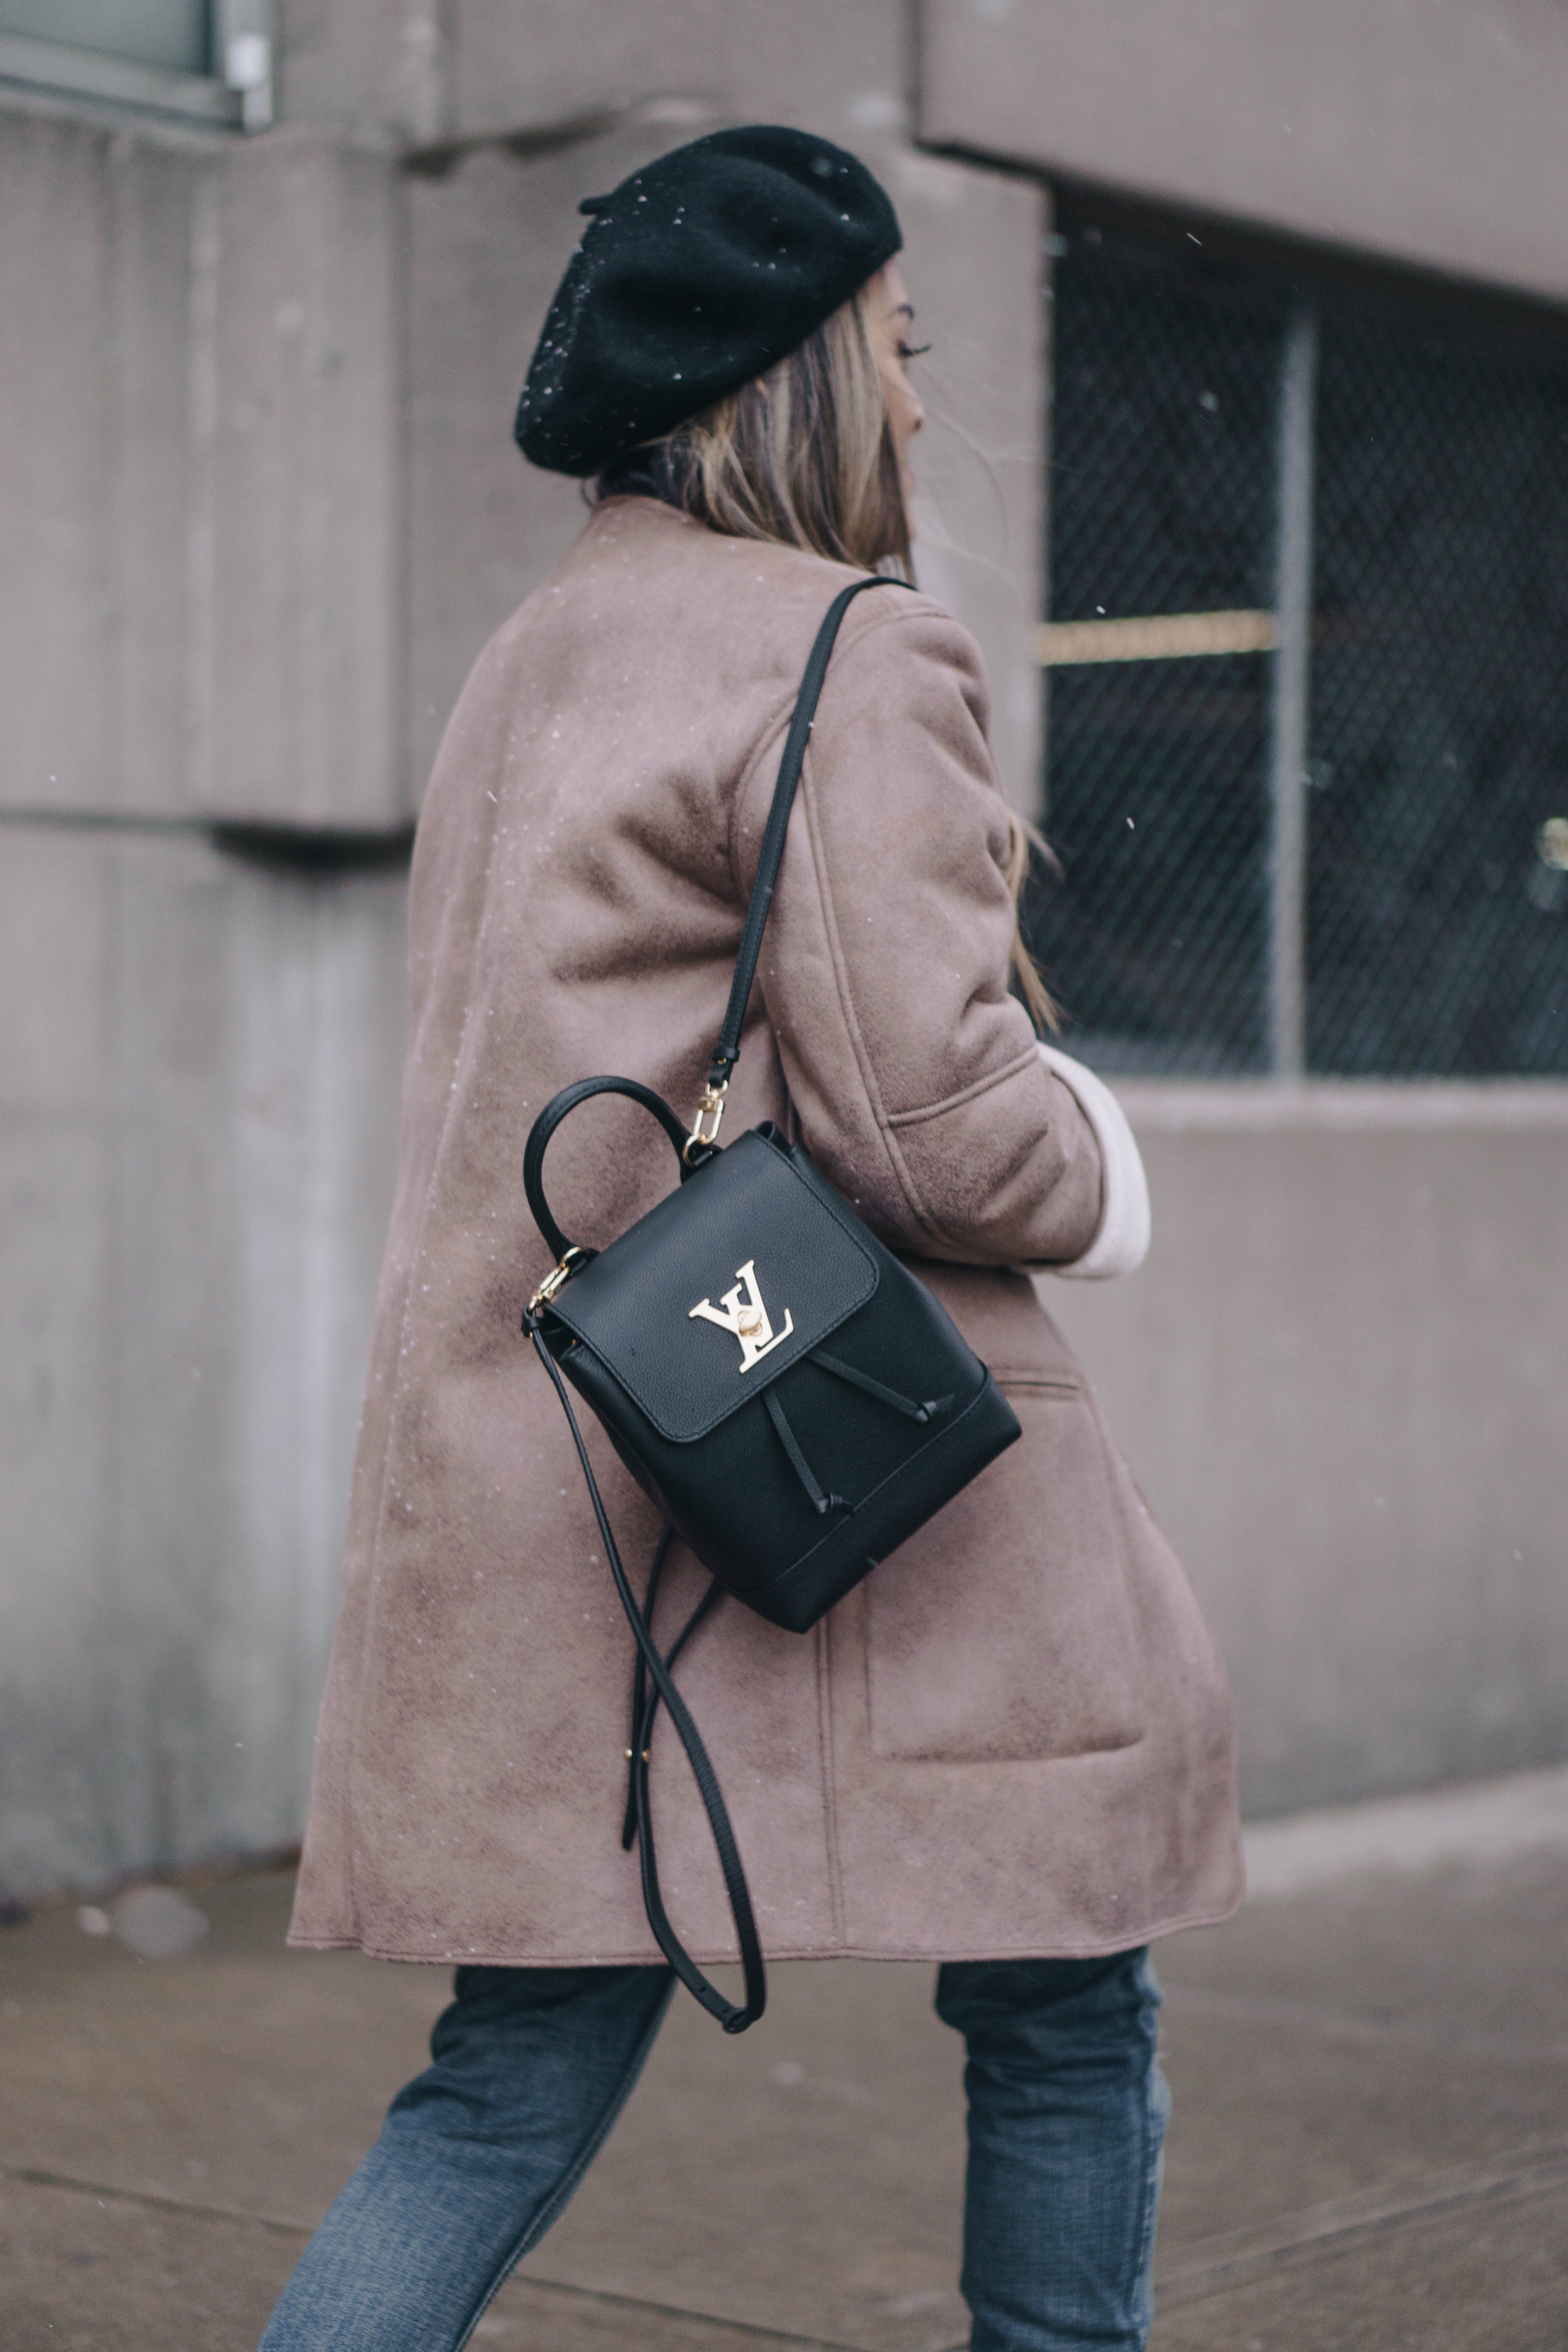 8411051c535 Louis Vuitton Mini Lockme Backpack Review | clothes in 2019 ...